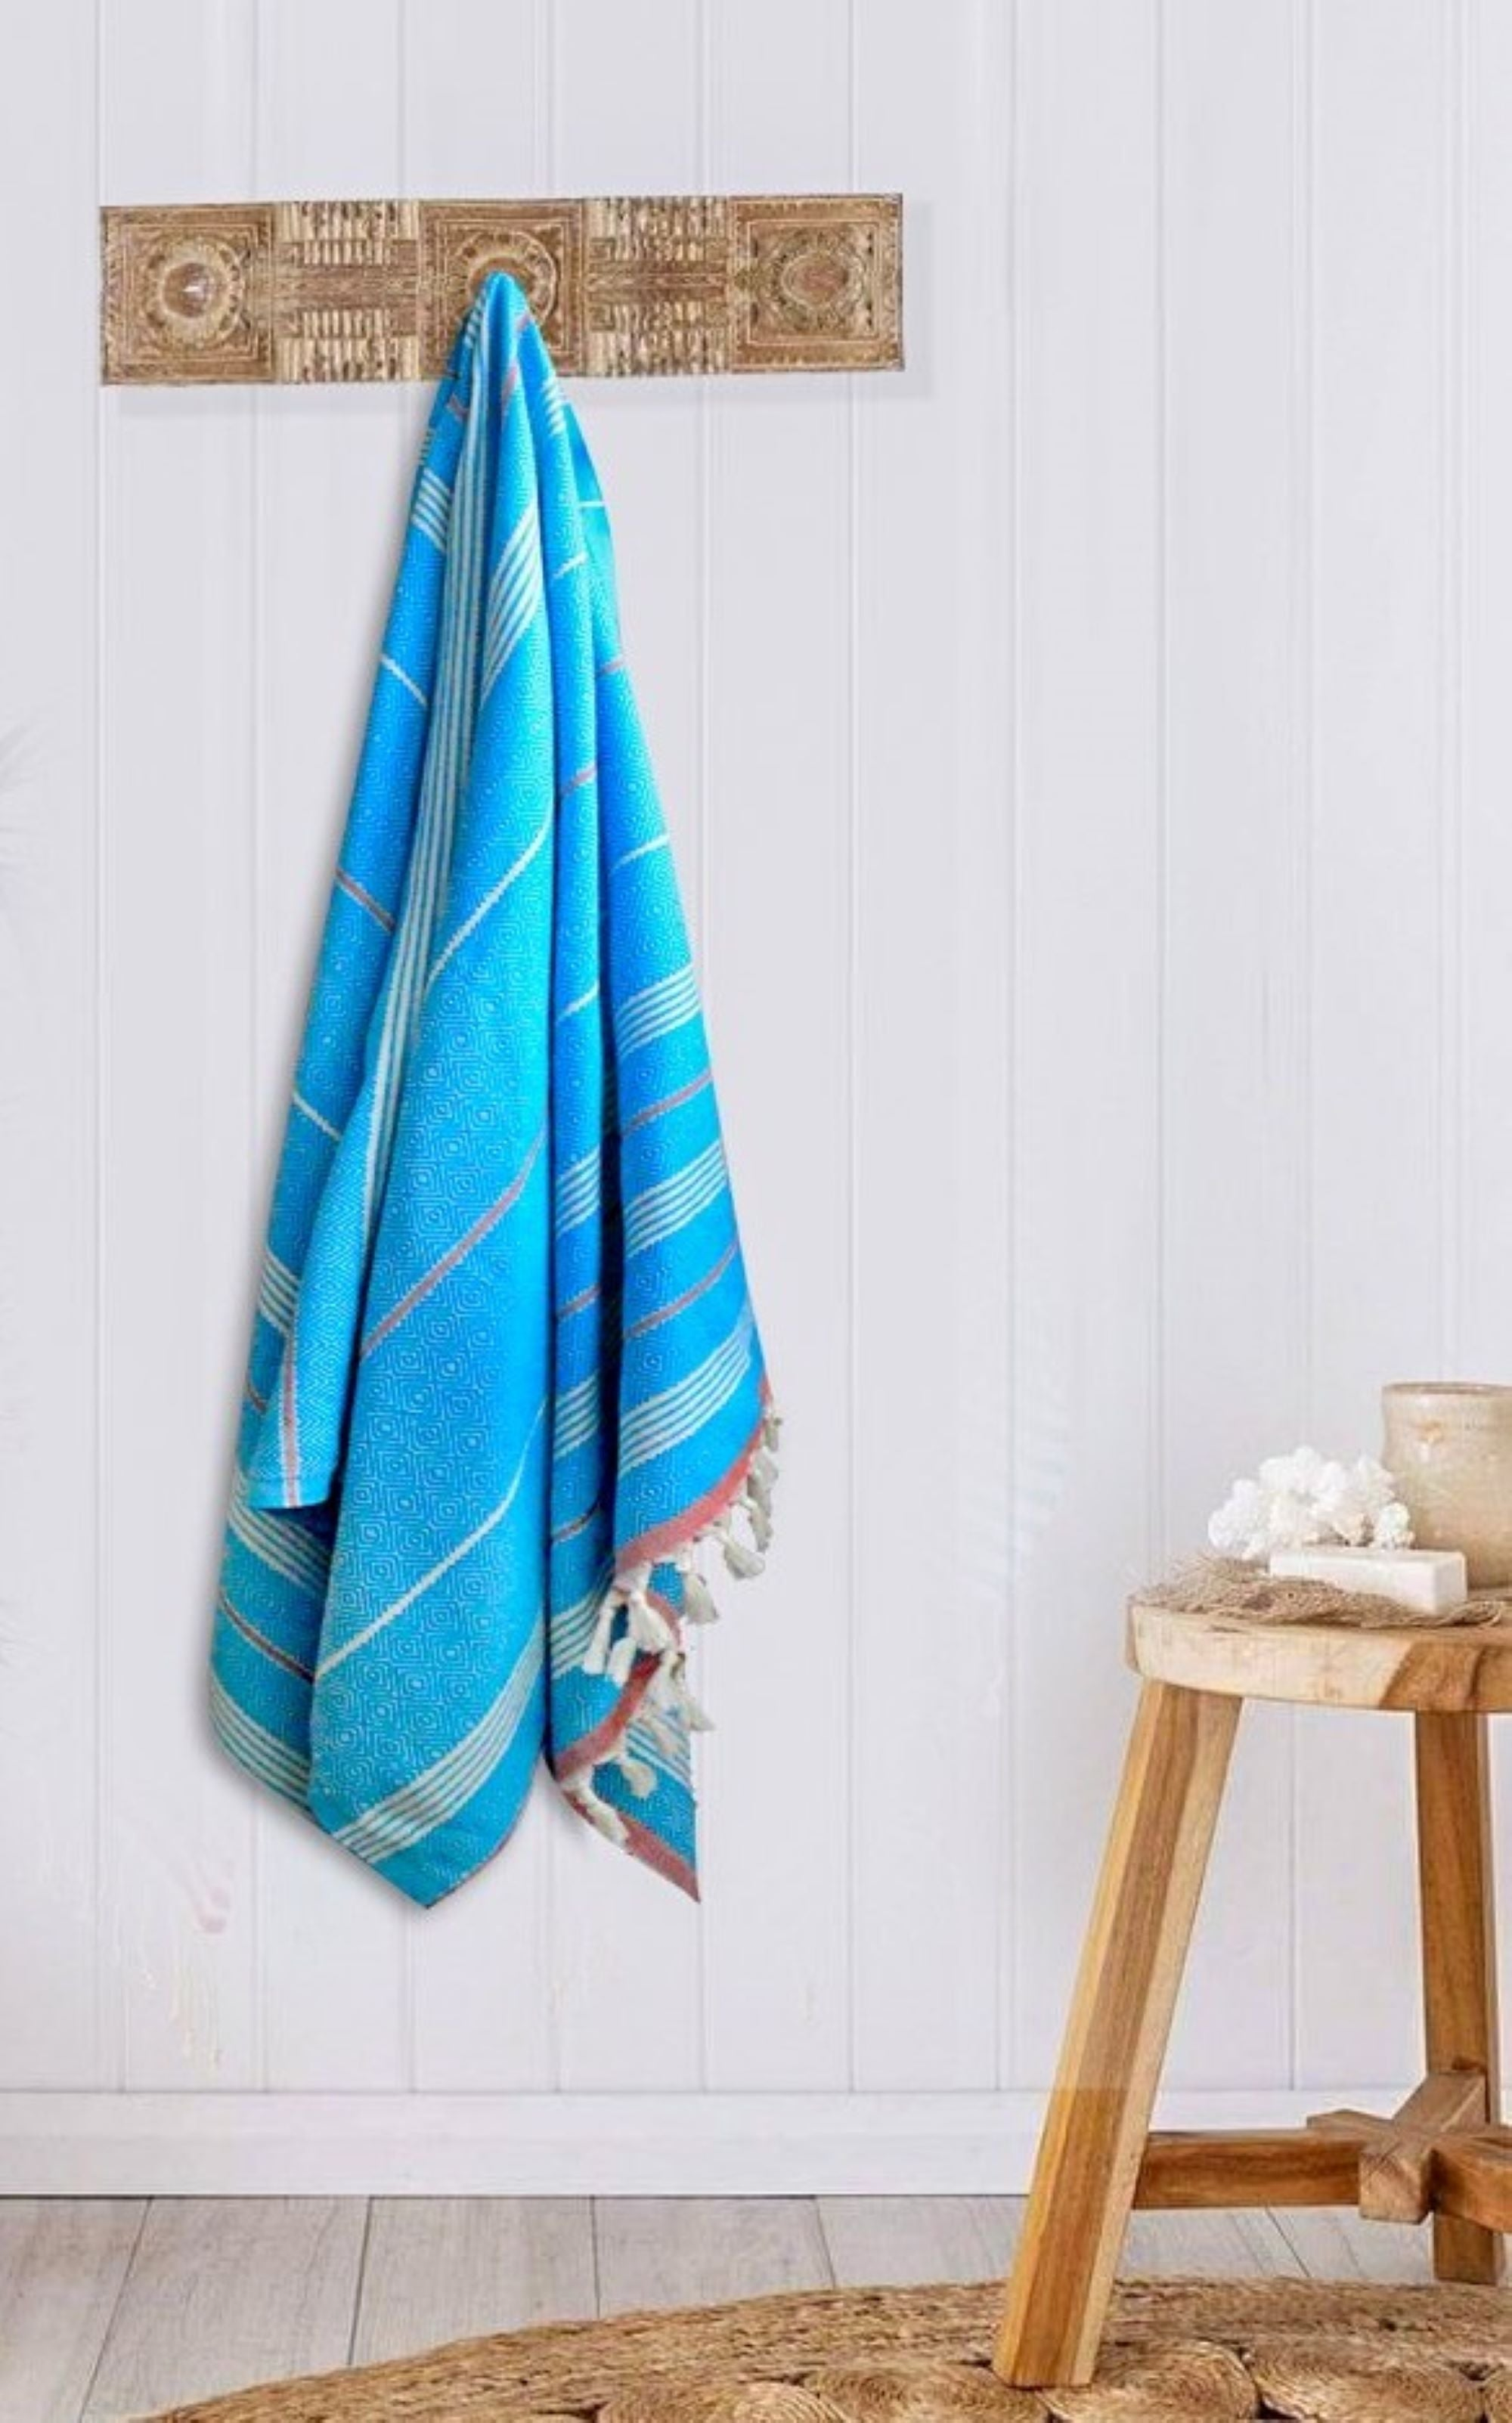 Turkish Bath towel Turquoise/Red , hand-embroidered, pure cotton, with a hand-knotted fringe at both ends and long stripes pattern.